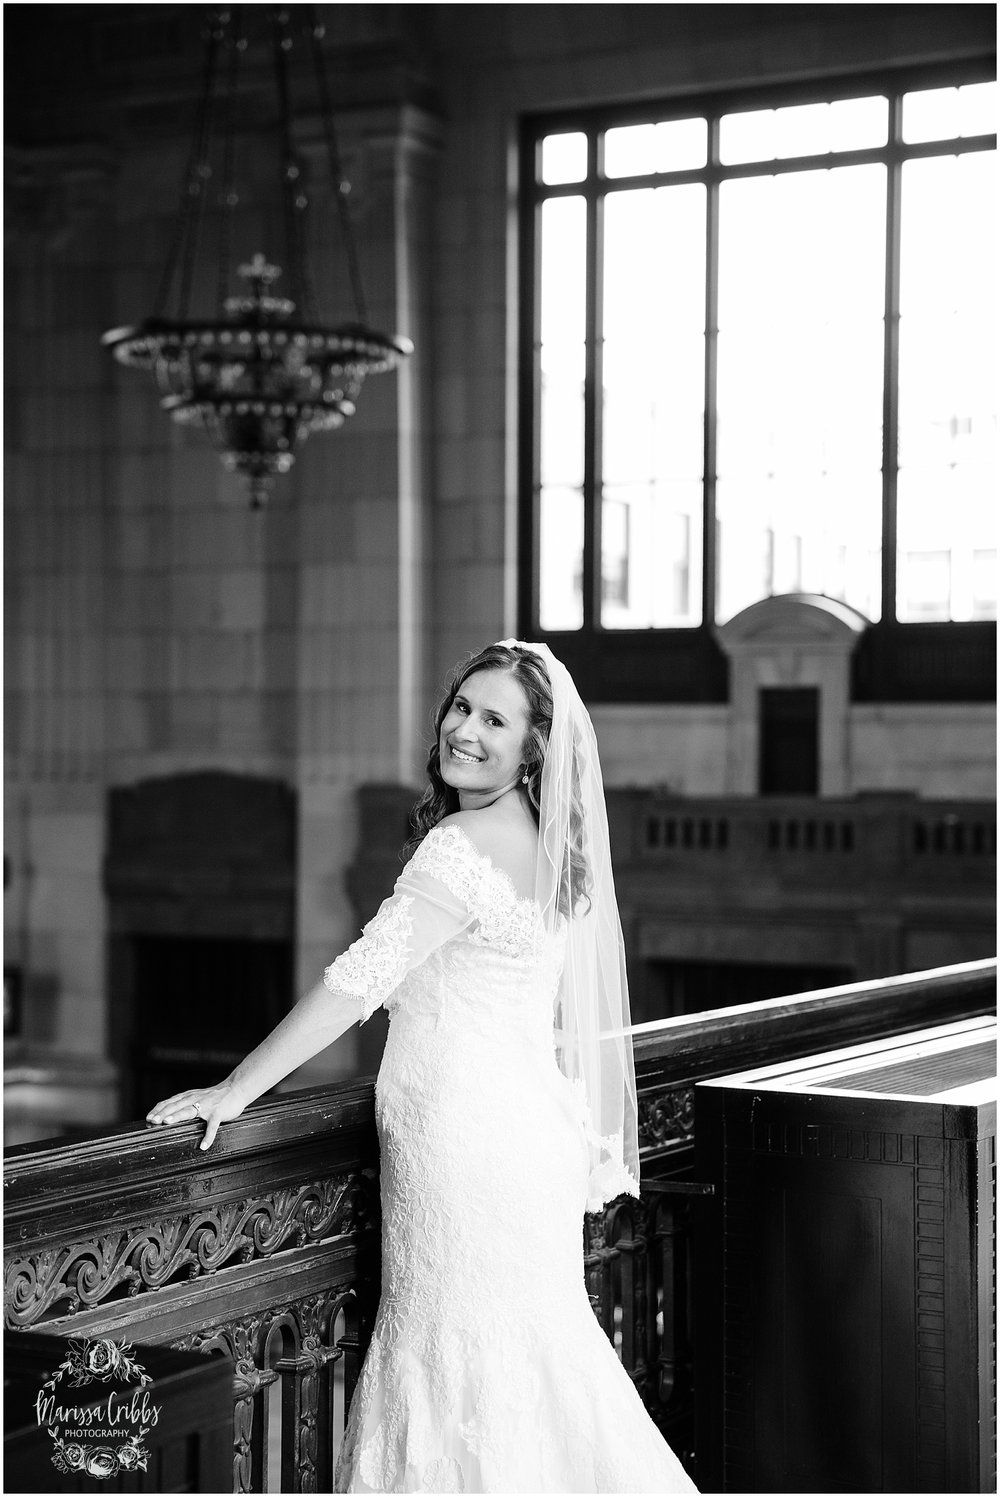 Madrid Theatre Wedding | Union Station | Liberty Memorial | KC Wedding Photographer | Marissa Cribbs Photography_0525.jpg